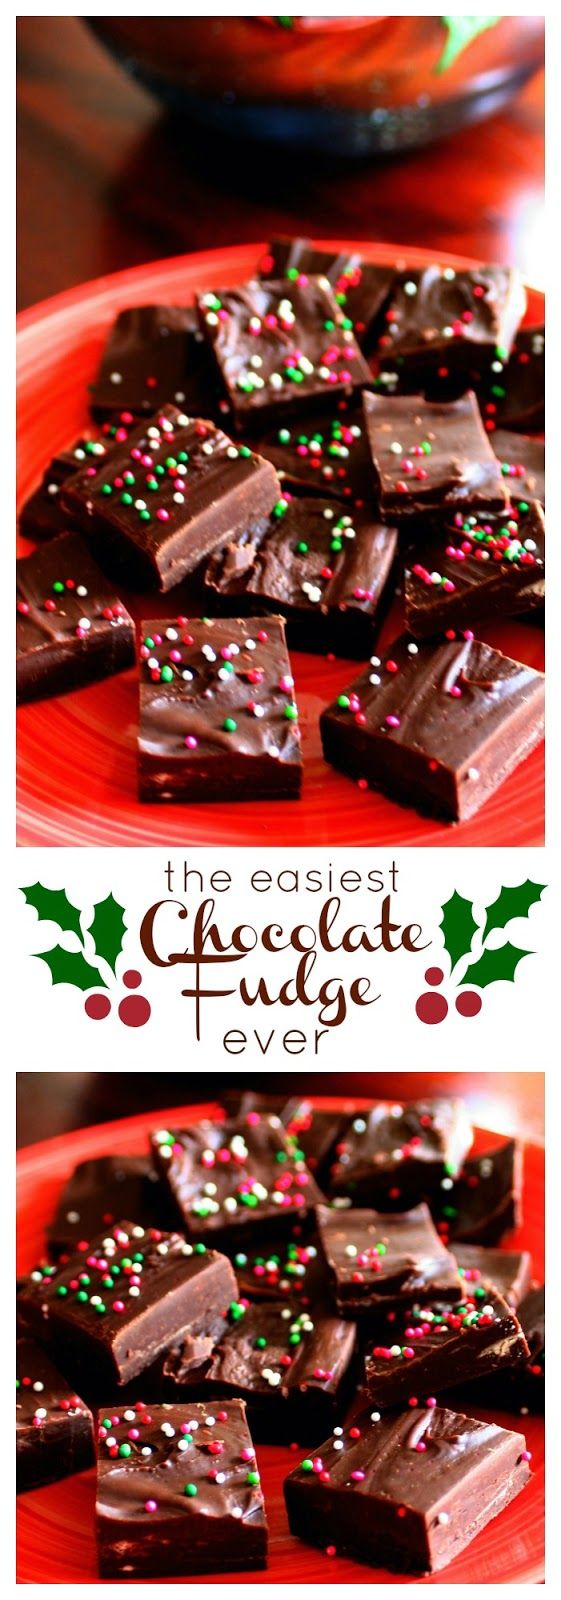 The easiest (and super delicious) Chocolate Fudge recipe ever!